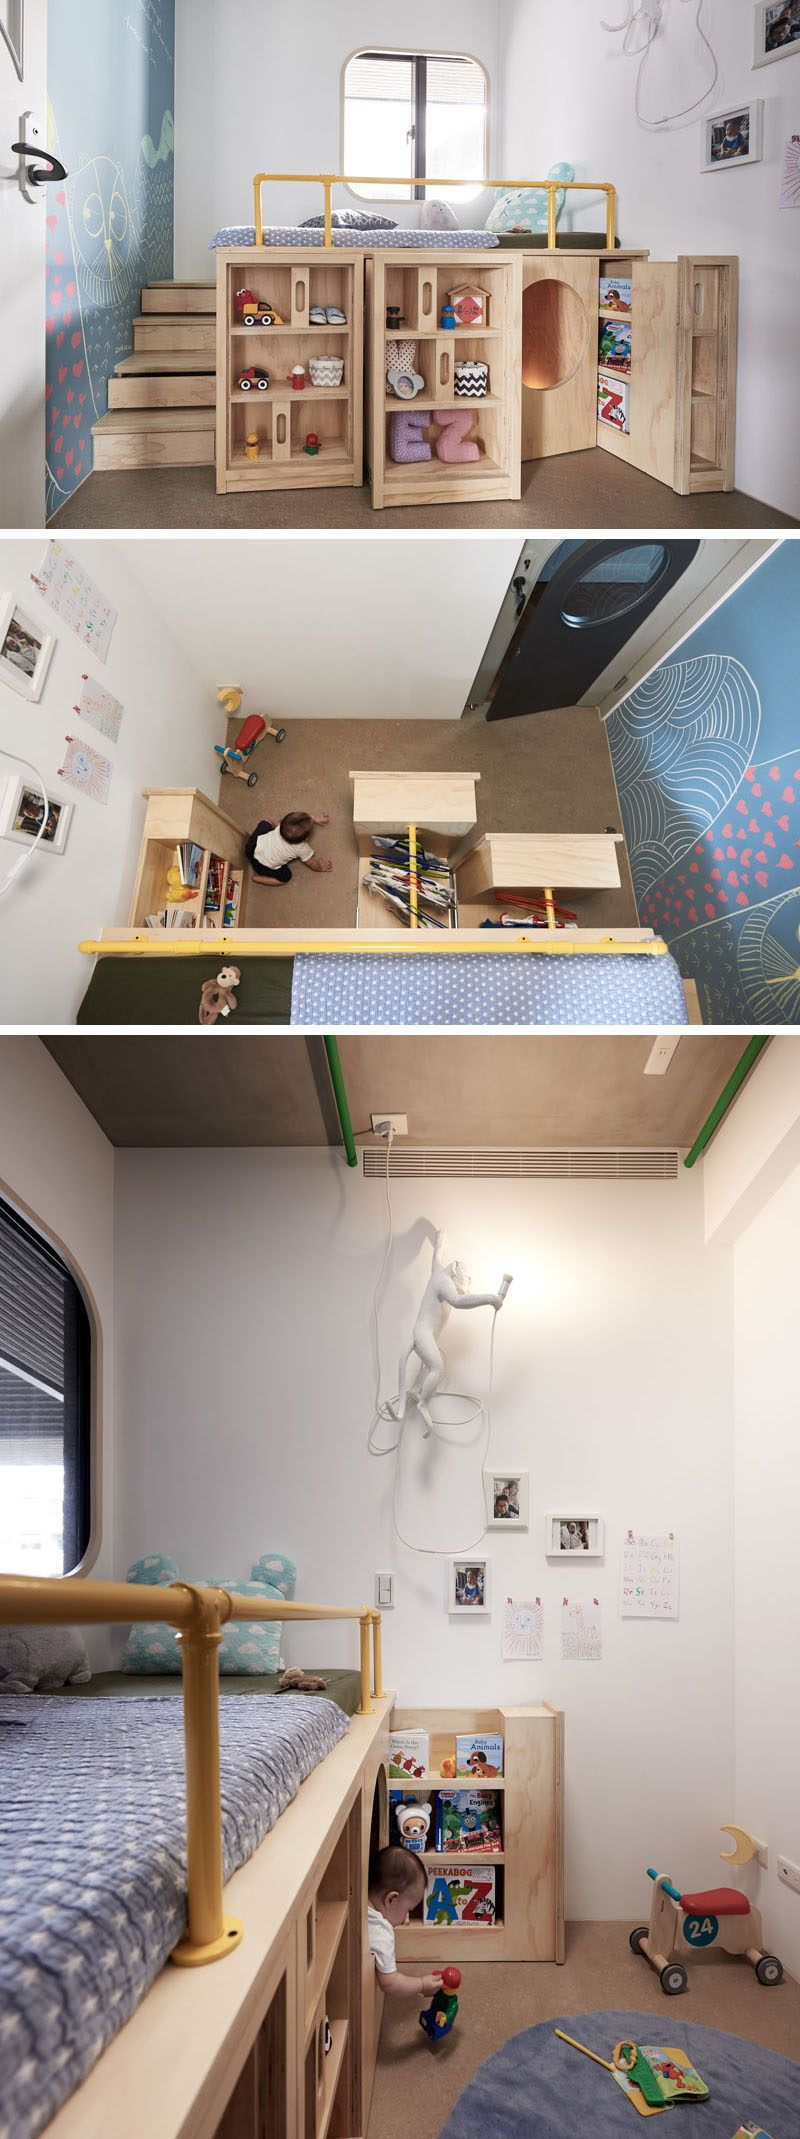 Design Detail This Children S Bedroom Has A Custom Bed Unit With Storage And A Hidden Play Space Child Bedroom Layout Small Kids Room Bedroom Furniture Layout